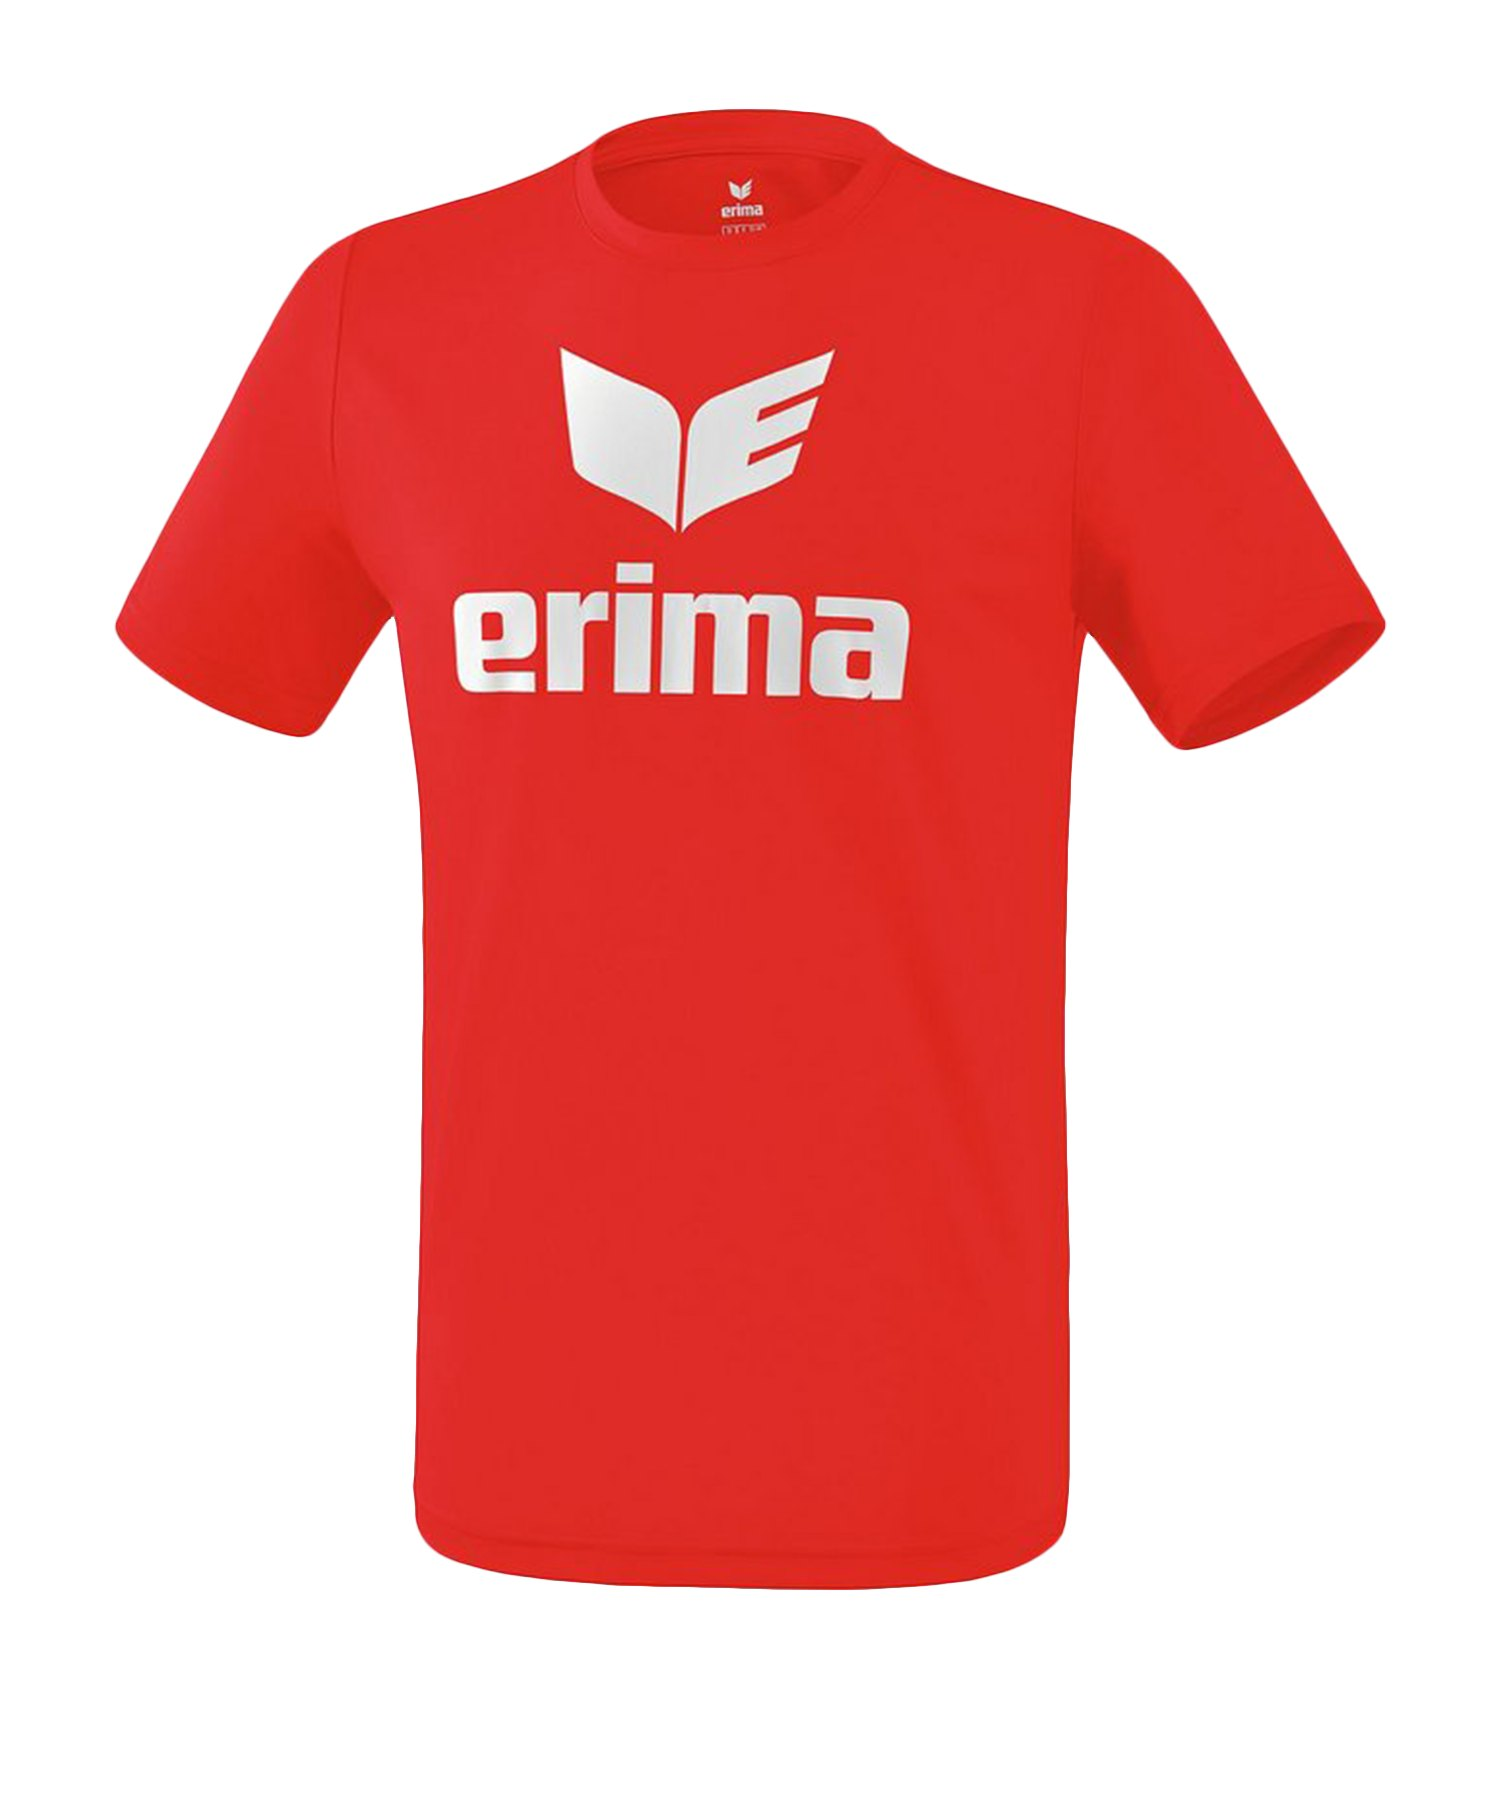 Erima Funktions Promo T-Shirt Rot Weiss - Rot